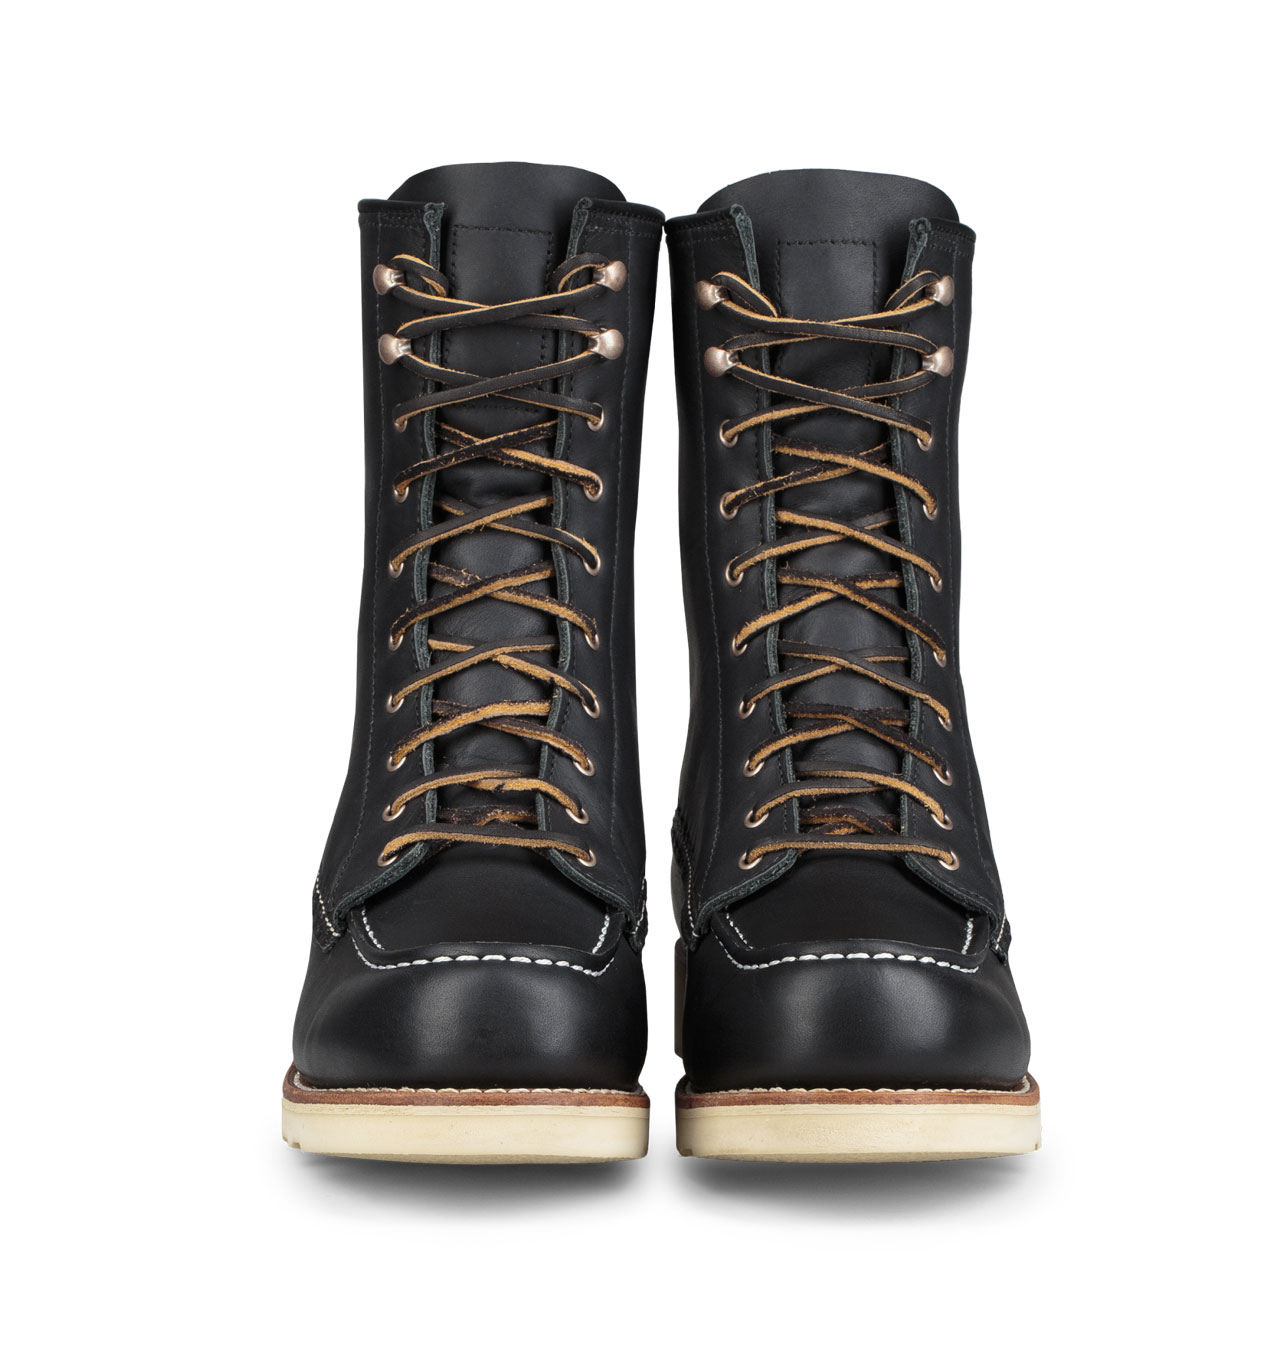 d373da92bfa Red Wing Shoes Woman Style No 3424 8-inch Moc Toe - Black Boundary Leather